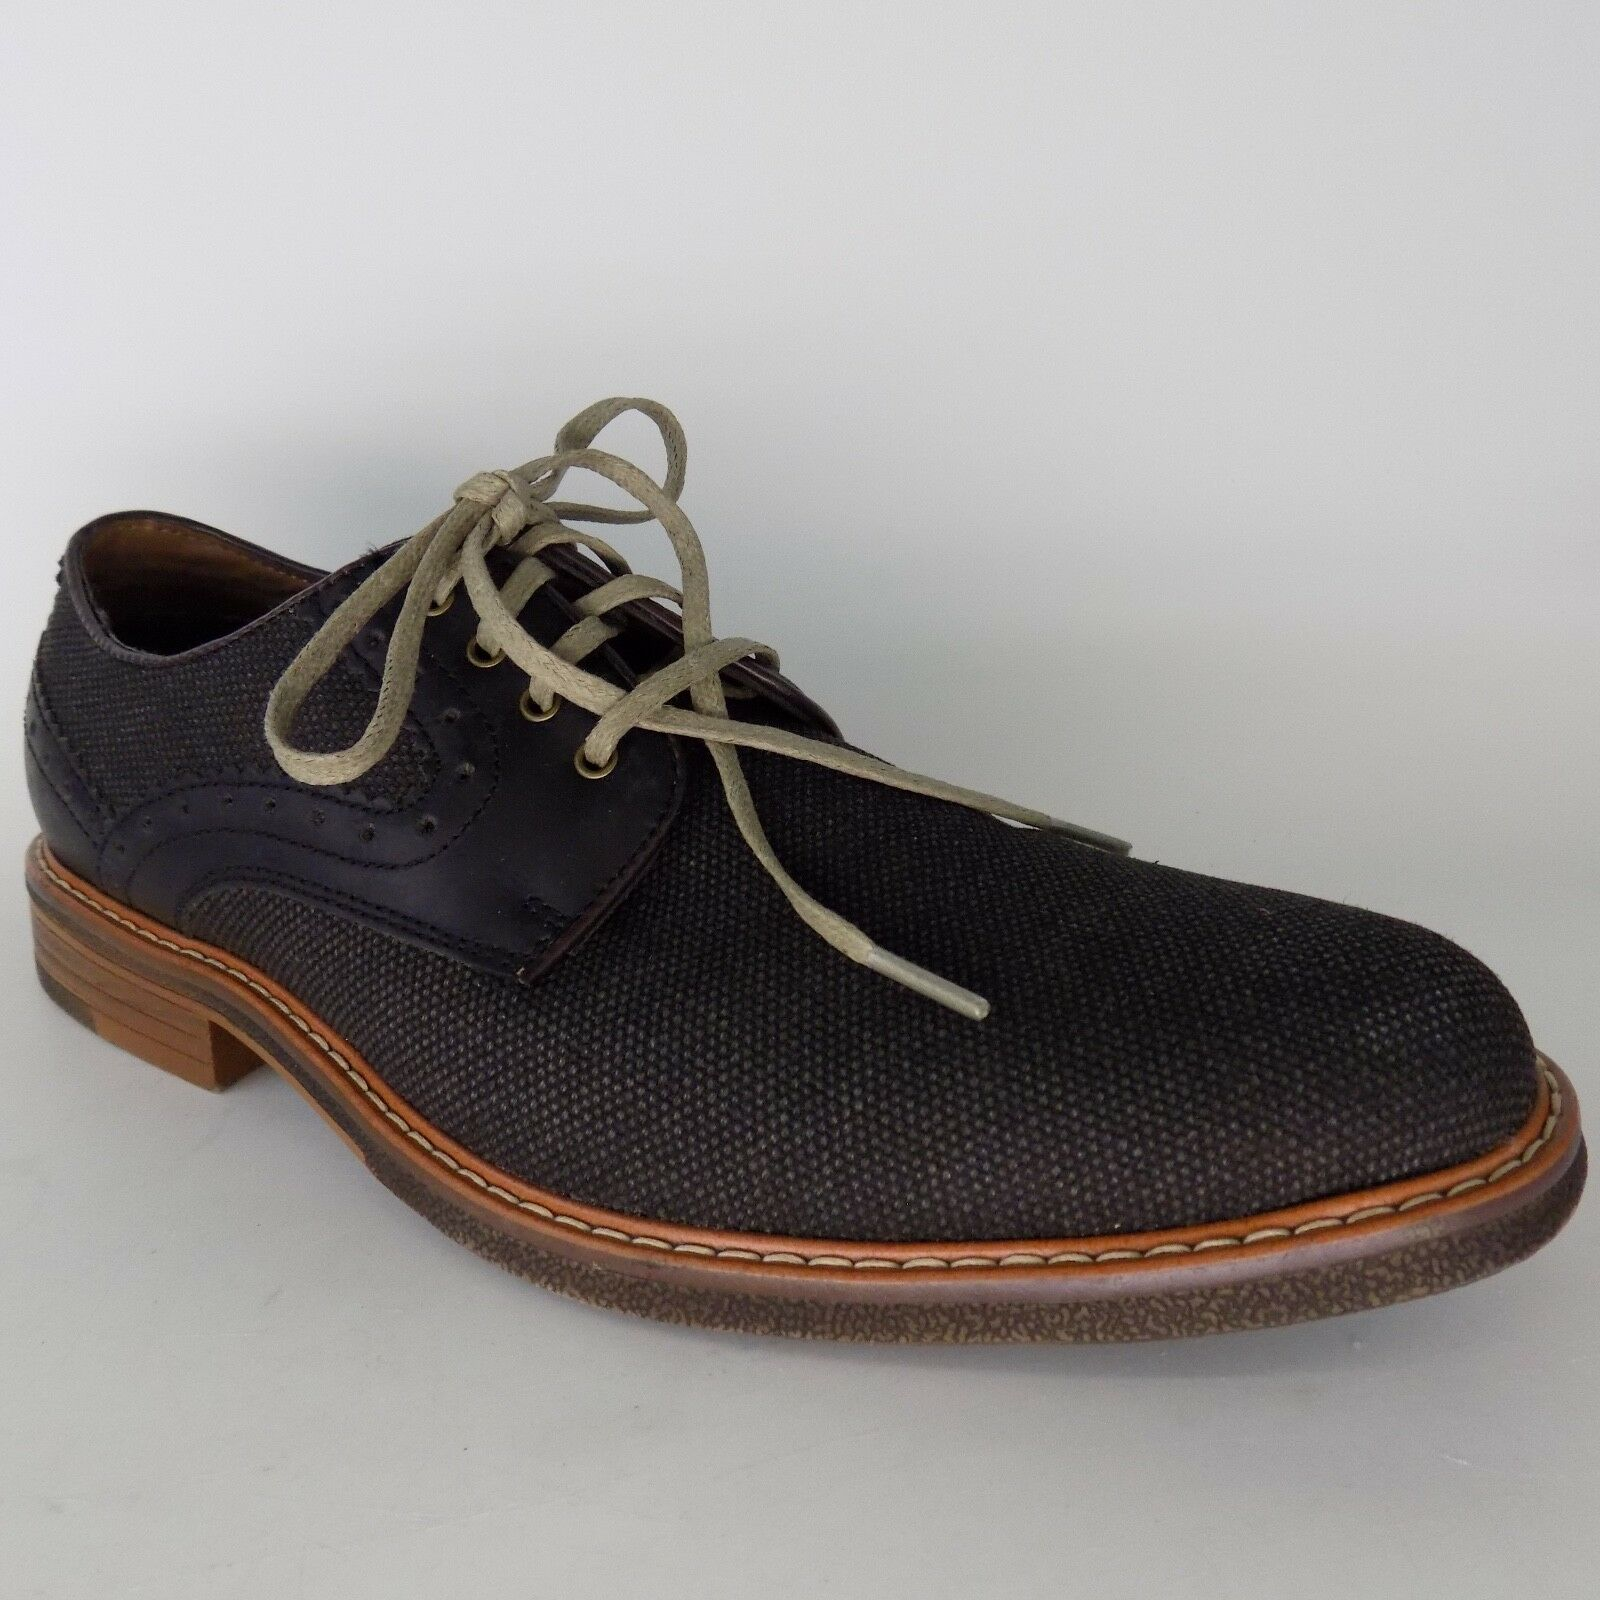 Dockers  Leather Lace-up Black Men Dress shoes Size 9 M AL4439